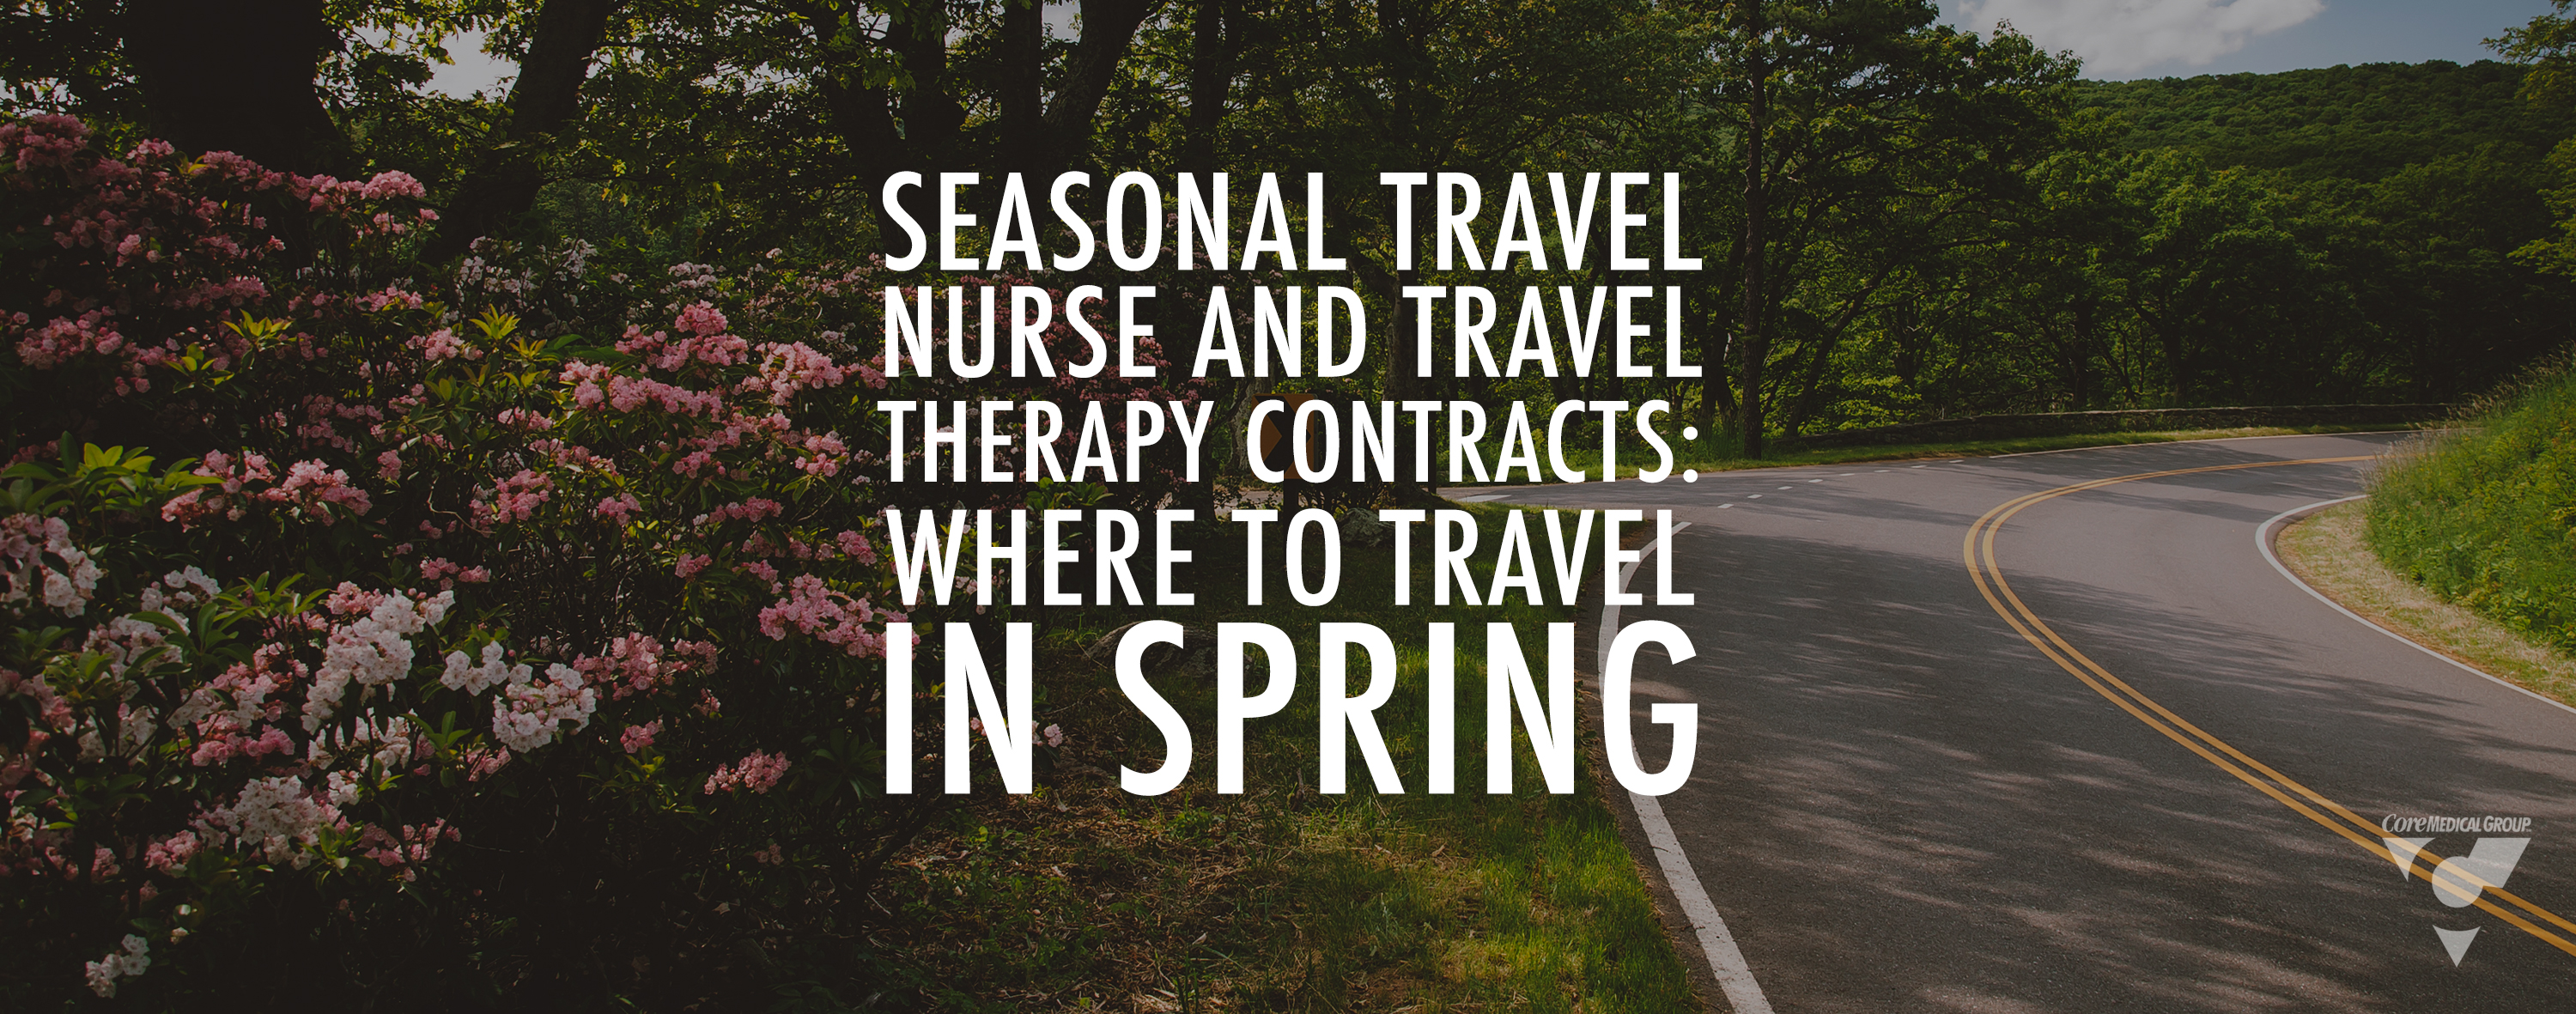 Seasonal Travel Nurse and Travel Therapy Contracts Where To Travel In Spring